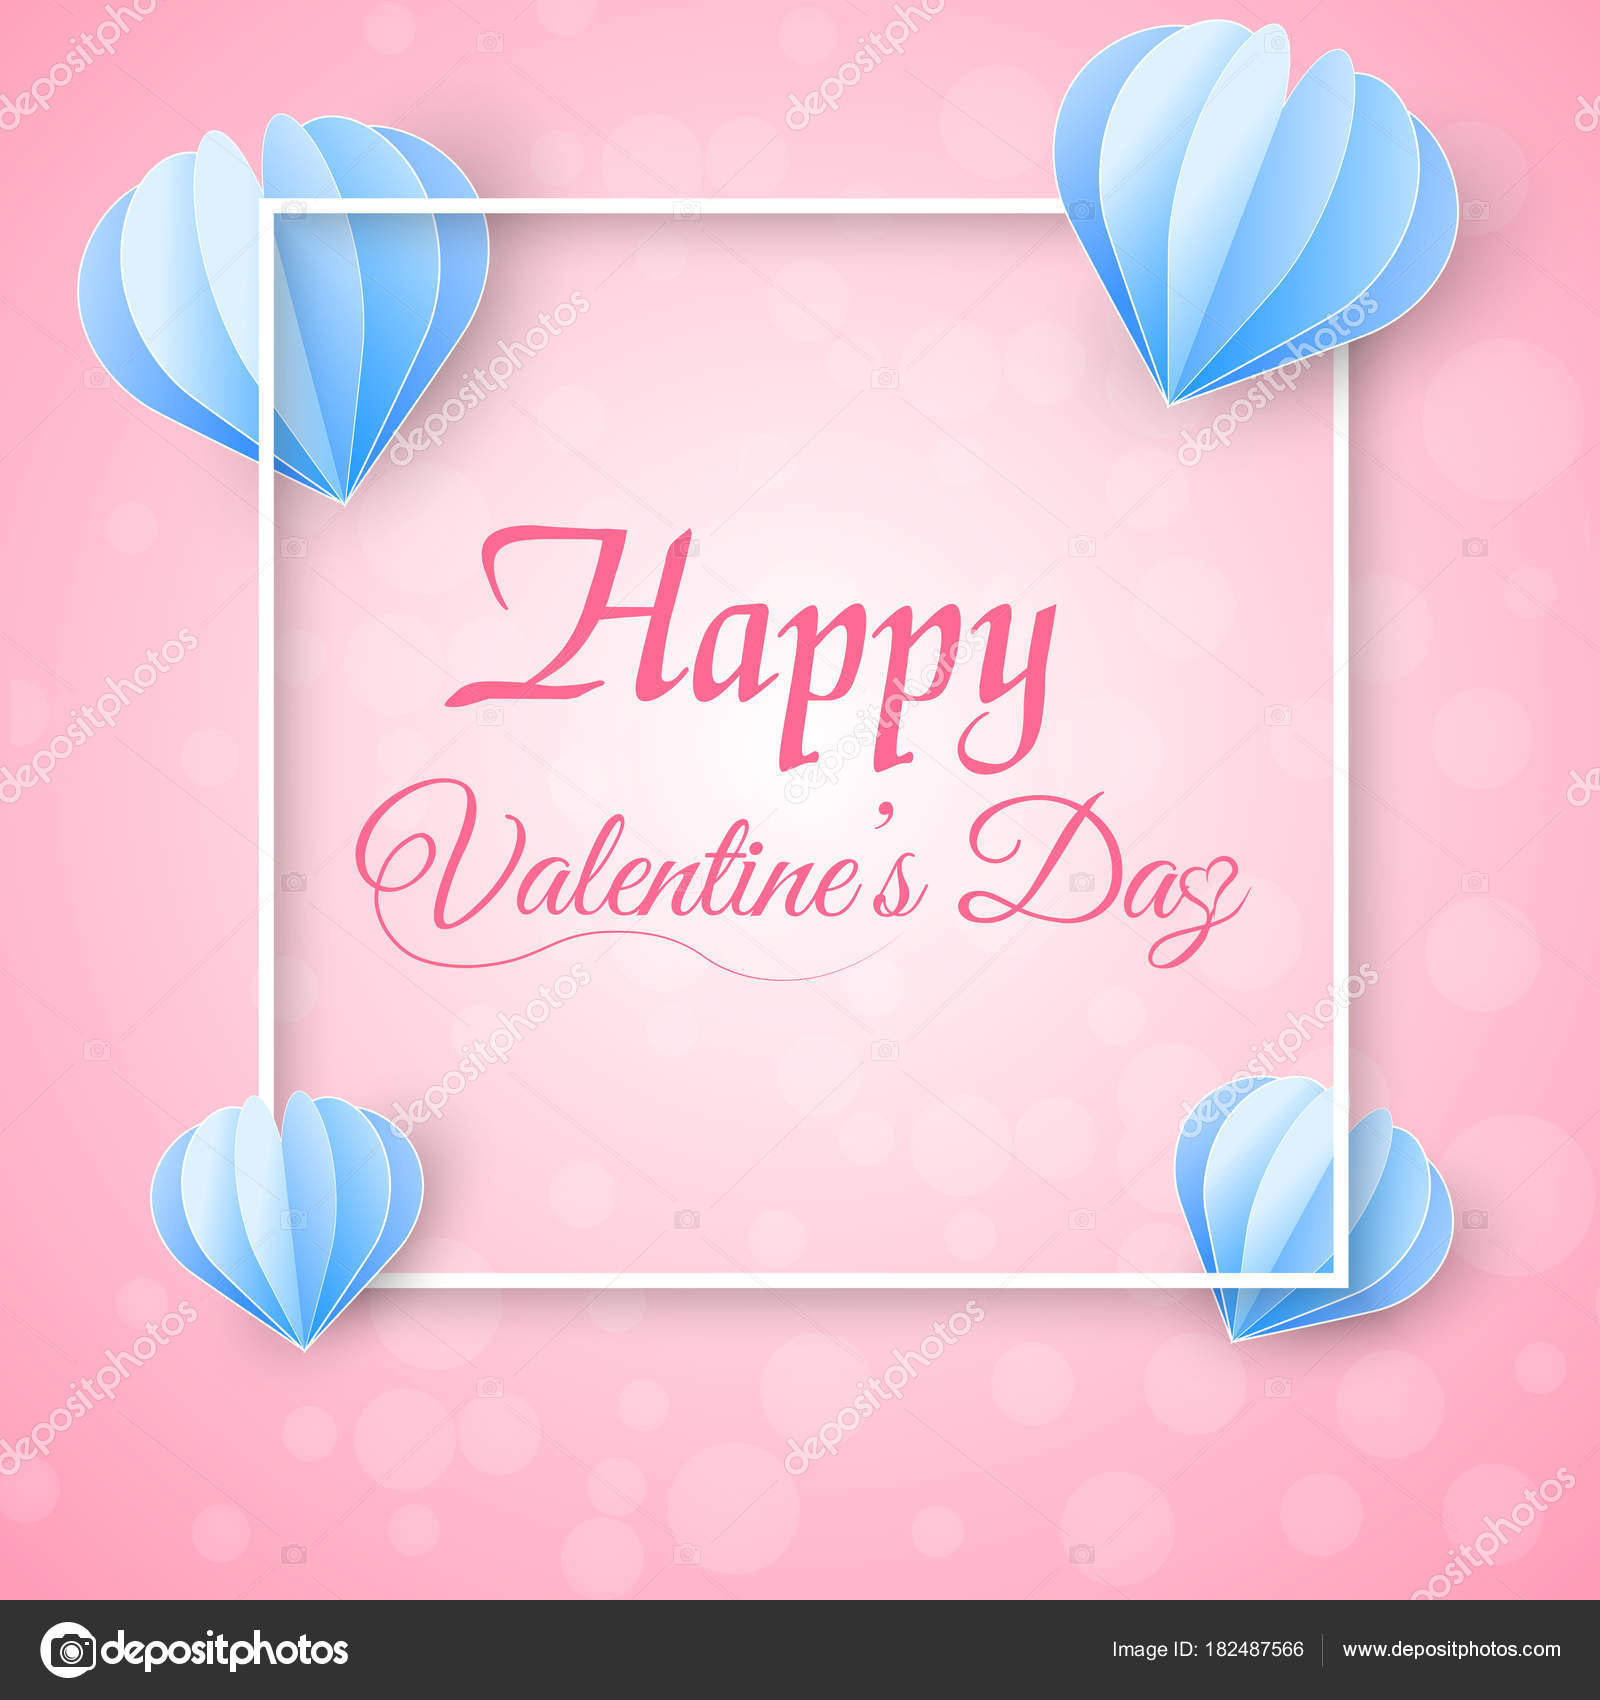 Valentines Day Greeting Card With Flying Paper Hearts And White